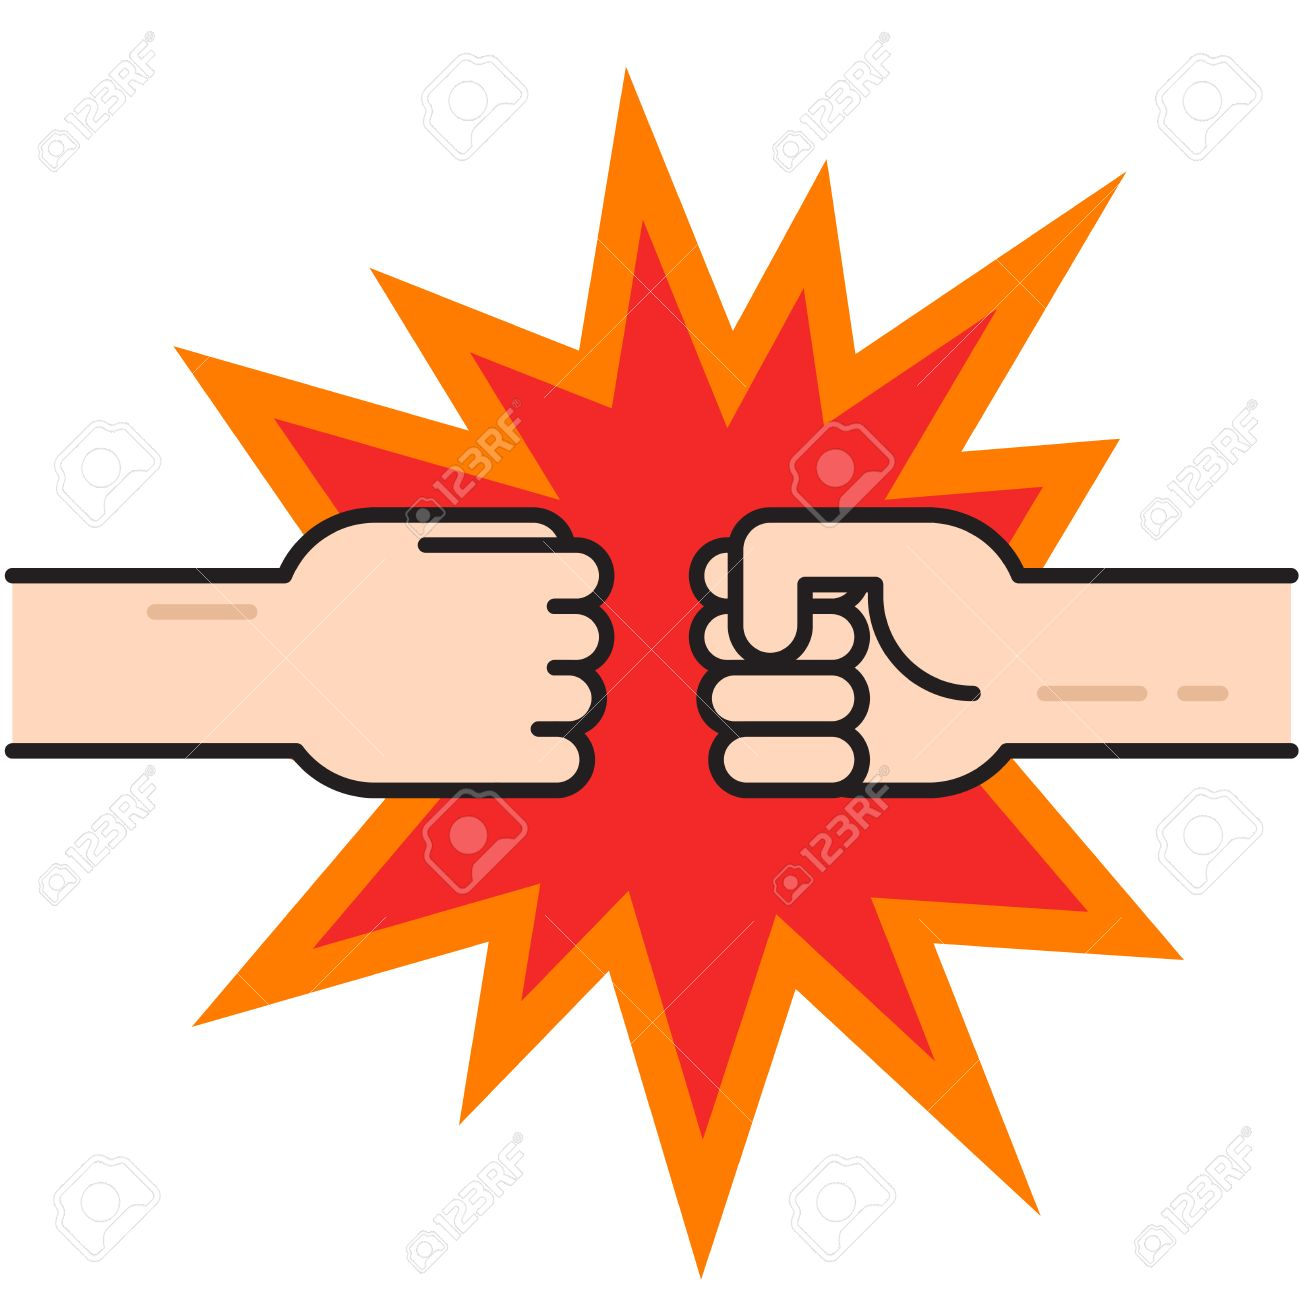 Two fists bumping together vector illustration, two hands with fists in air punching, concept of fight, strength cartoon gesture on white background, flat line outline art - 59740706